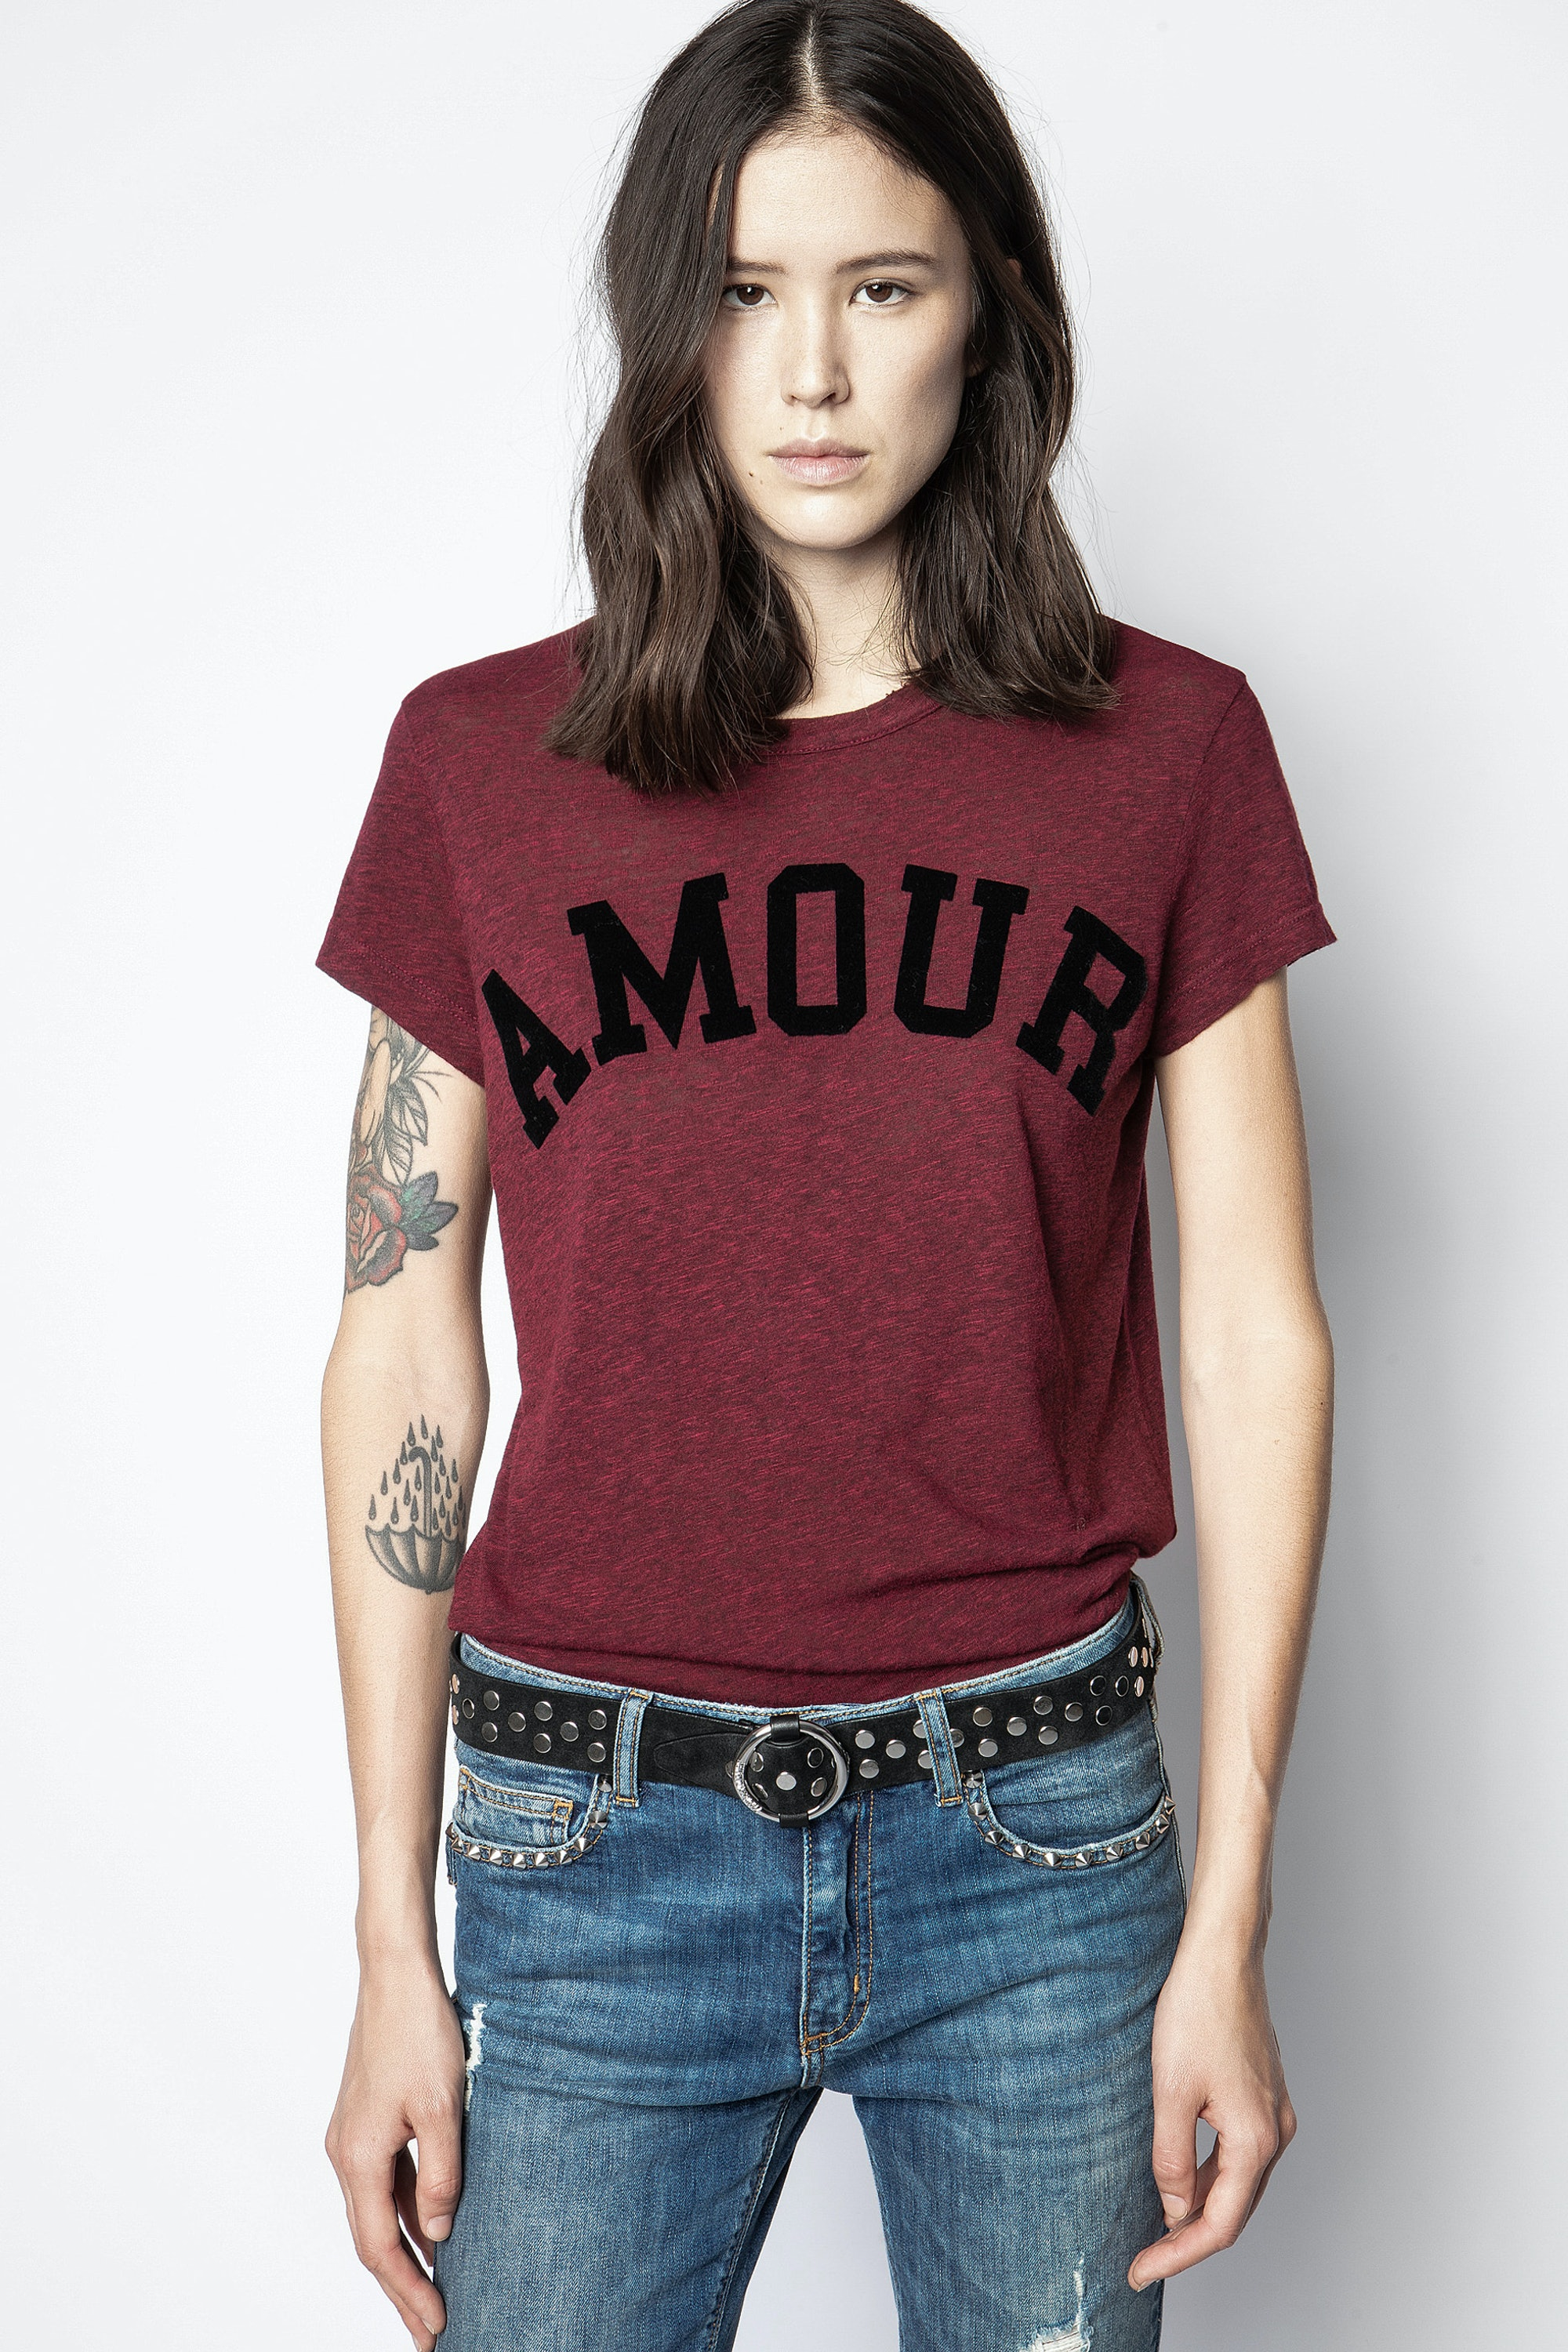 Walk Amour Overdyed T-shirt